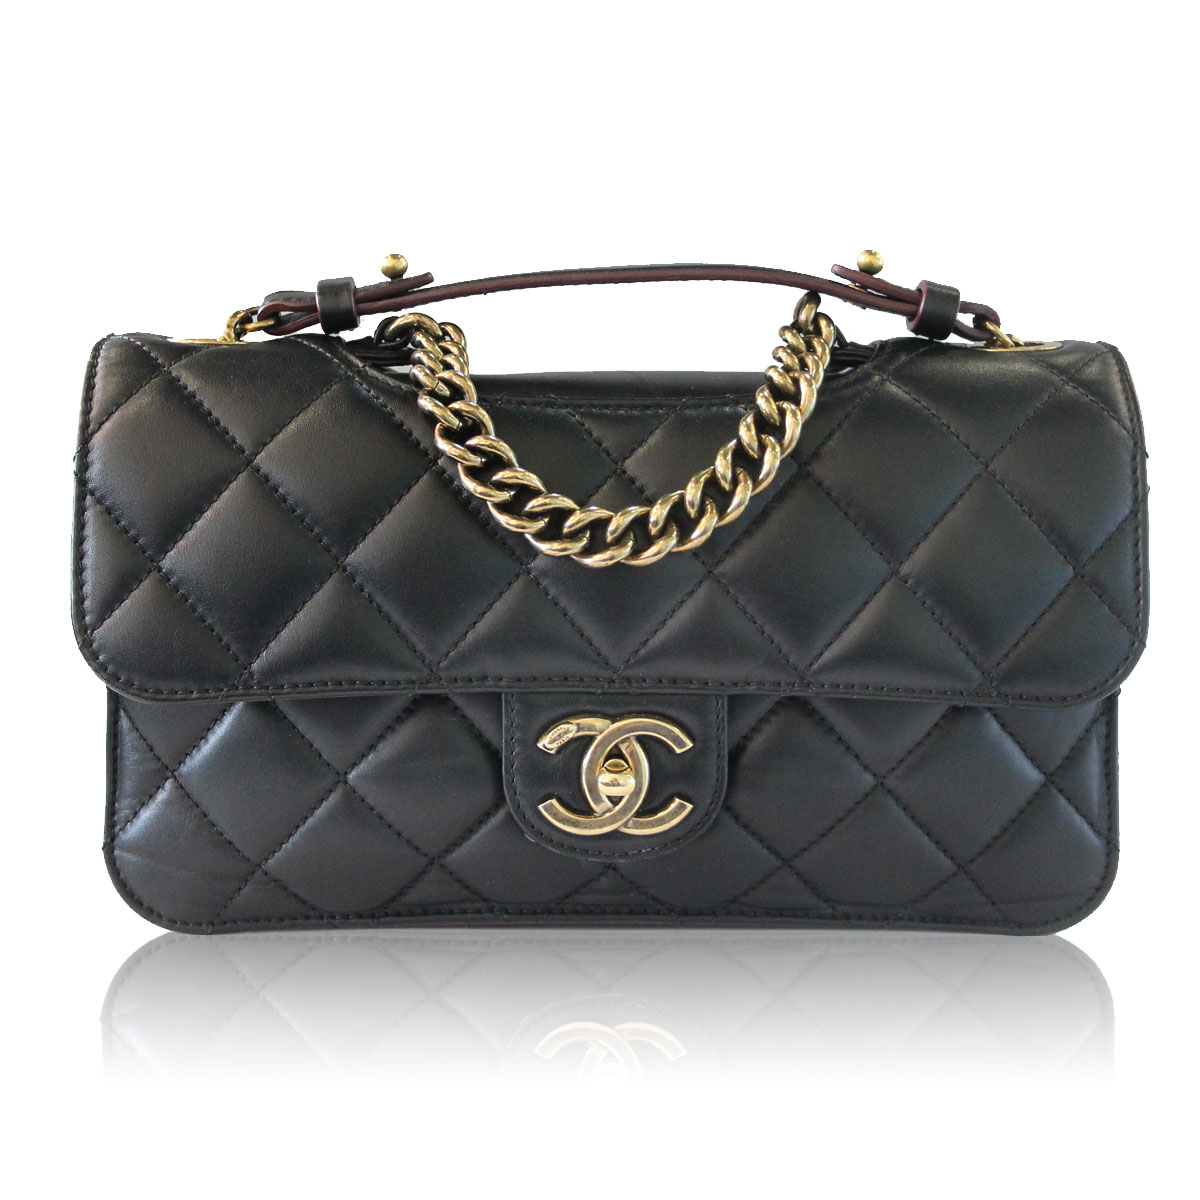 0203cb496268 Sell Chanel Bag Toronto | Stanford Center for Opportunity Policy in ...